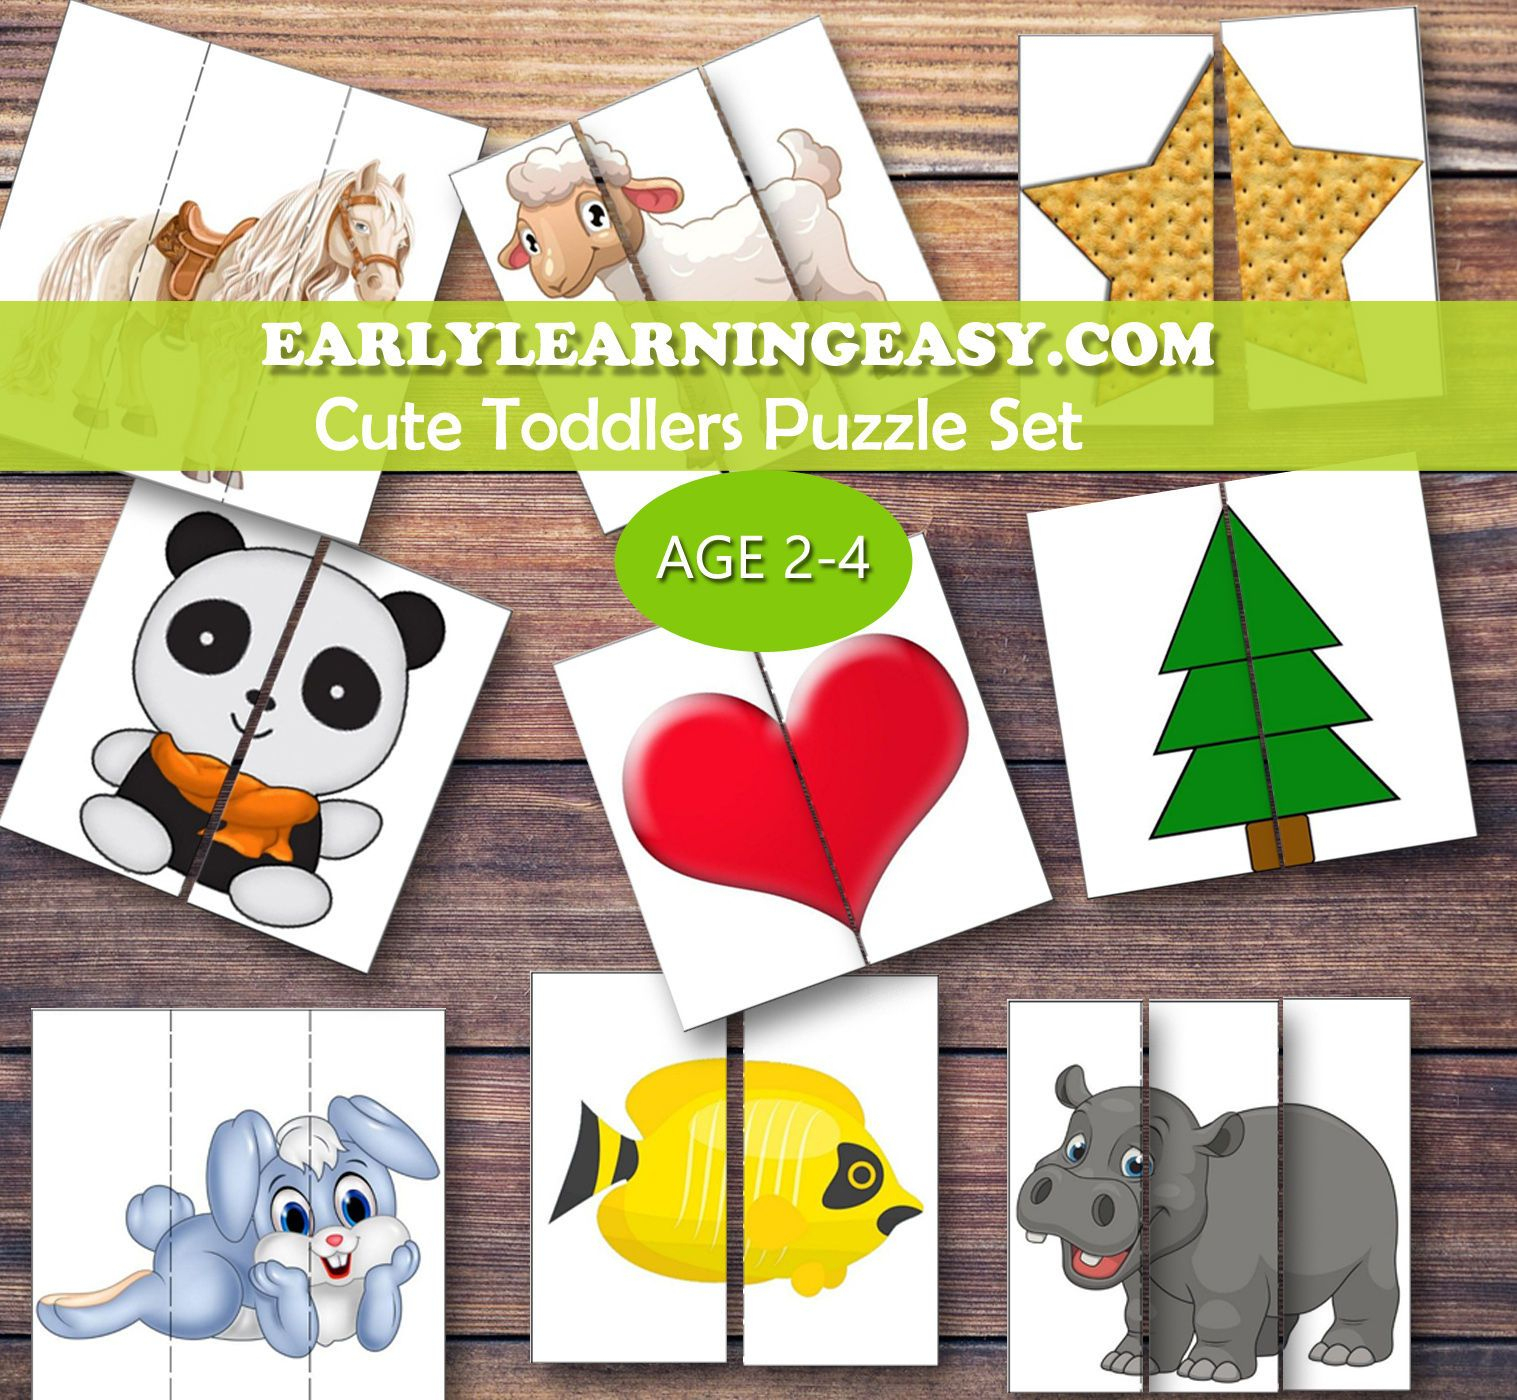 Spring Easter | Mdo 2 | Puzzles For Toddlers, Kids Education - 2 Piece Puzzle Printable